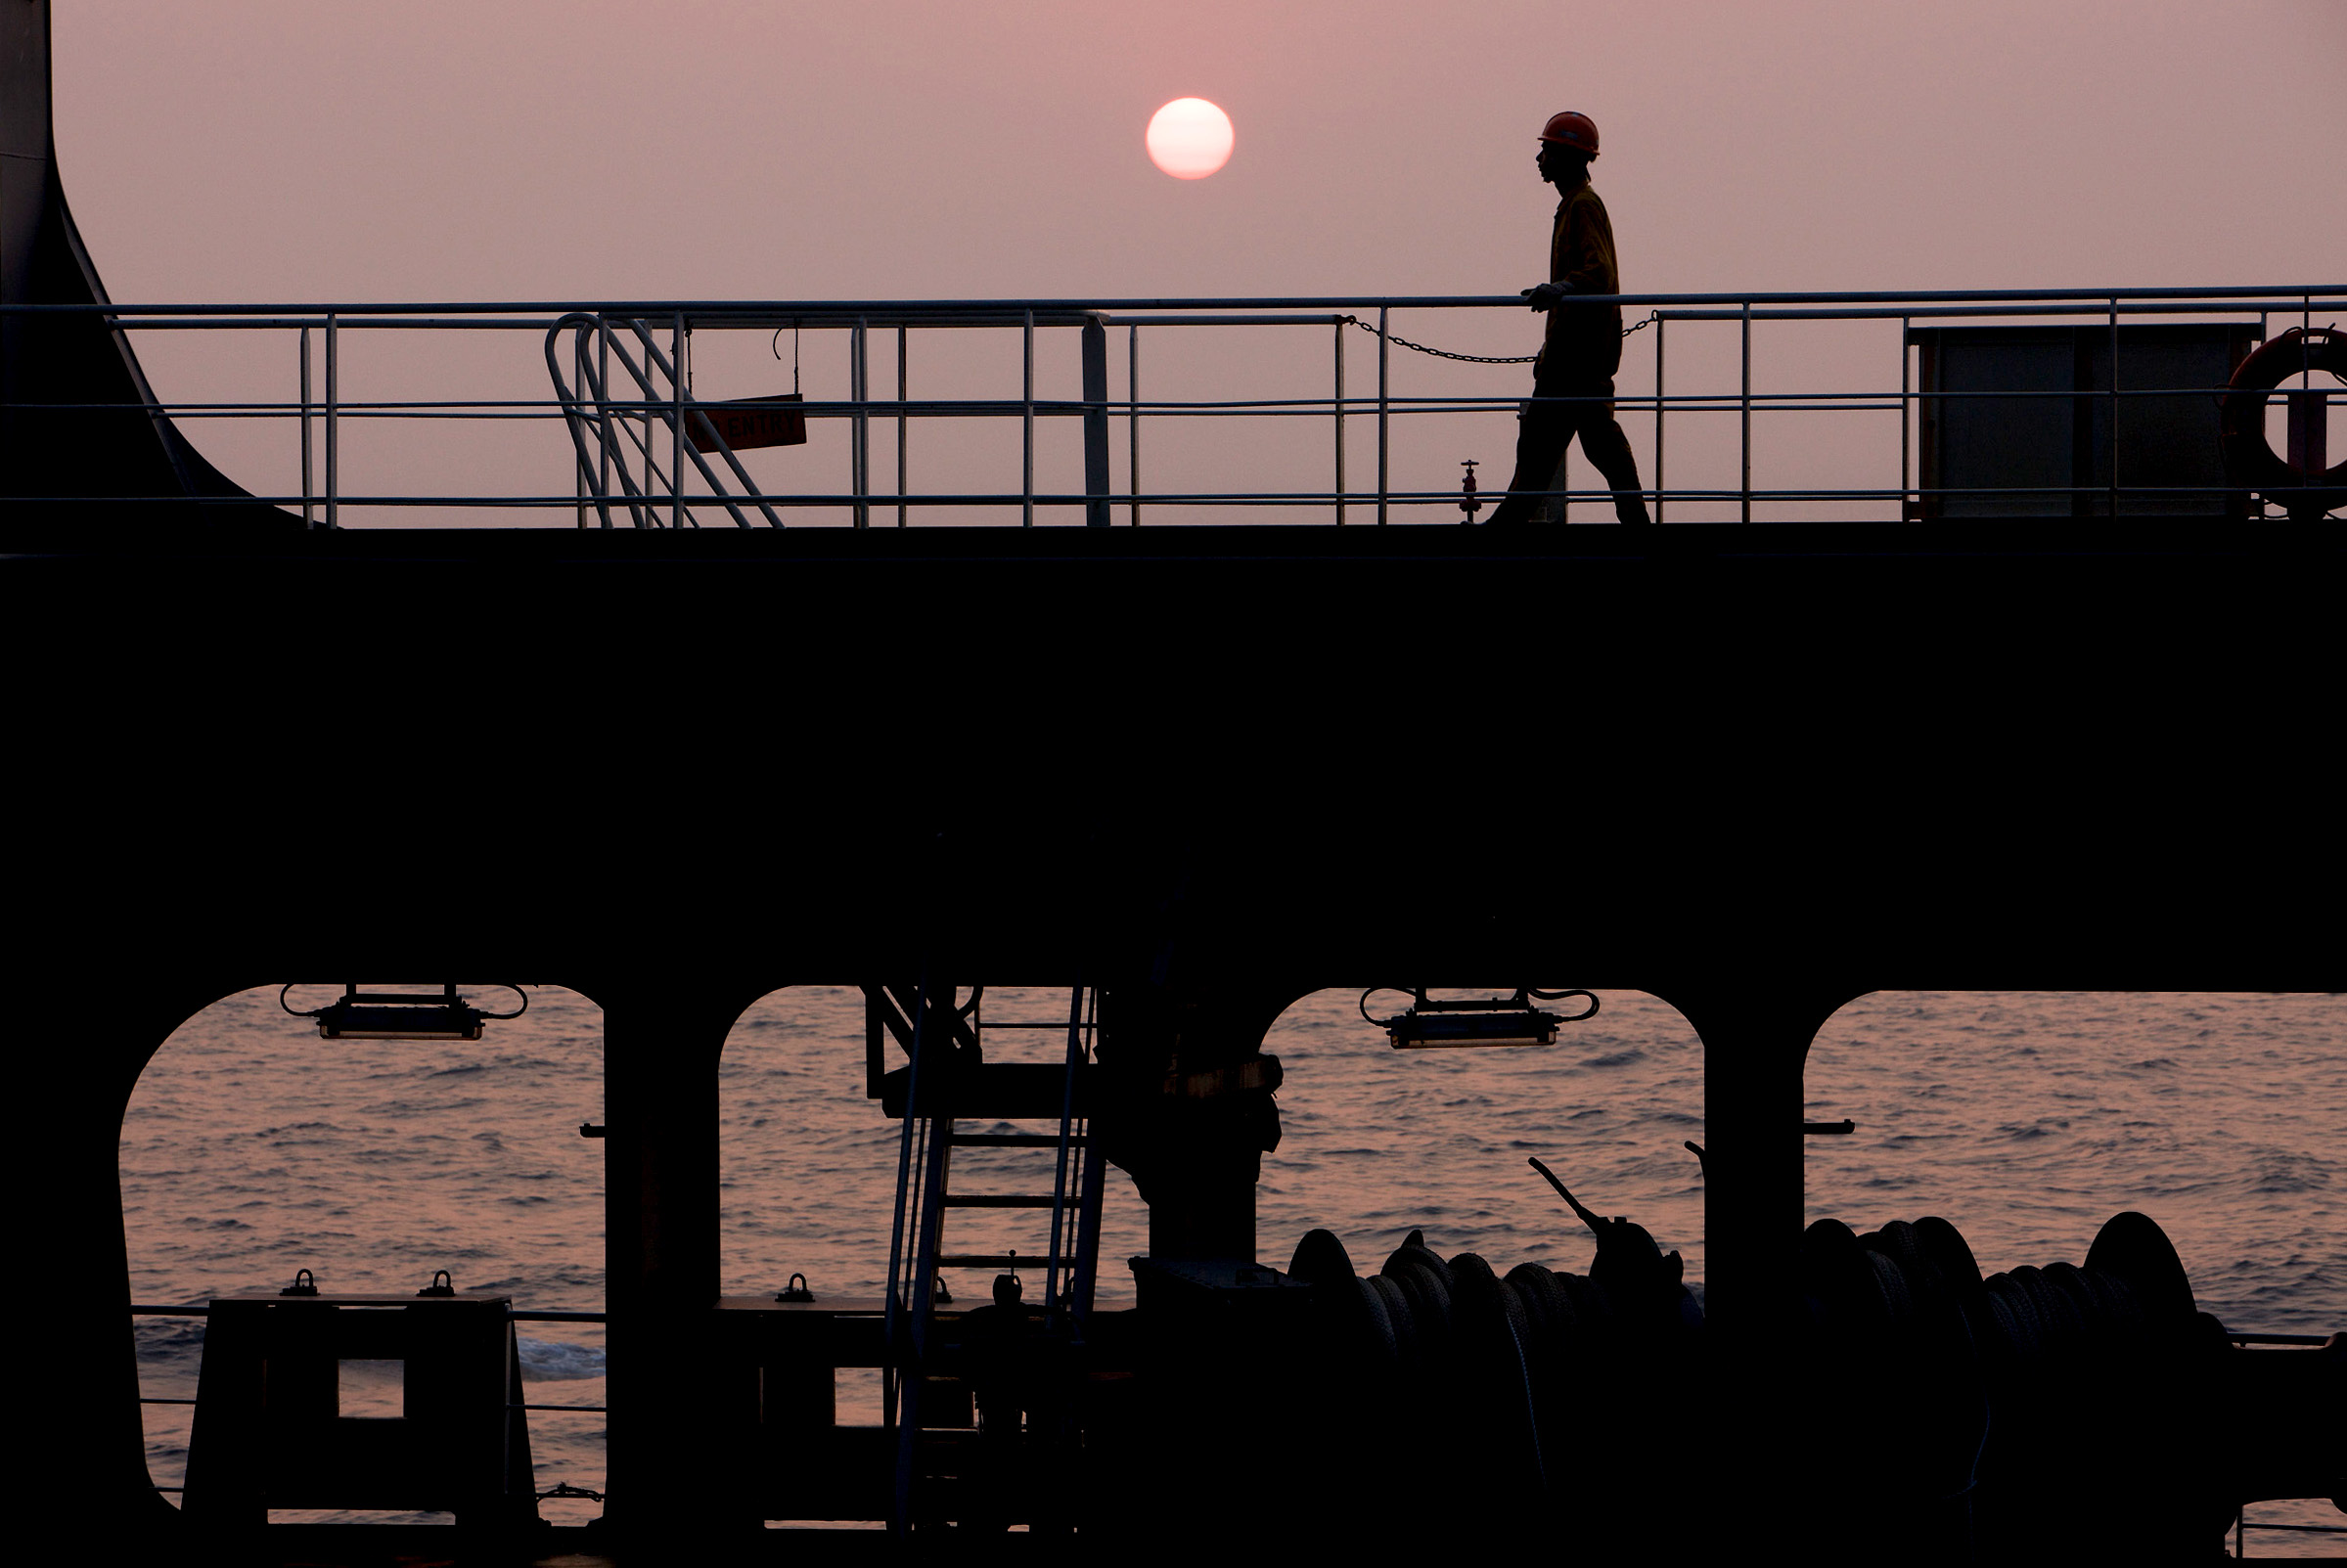 Silhouette of seafarer on a boat against the sunset